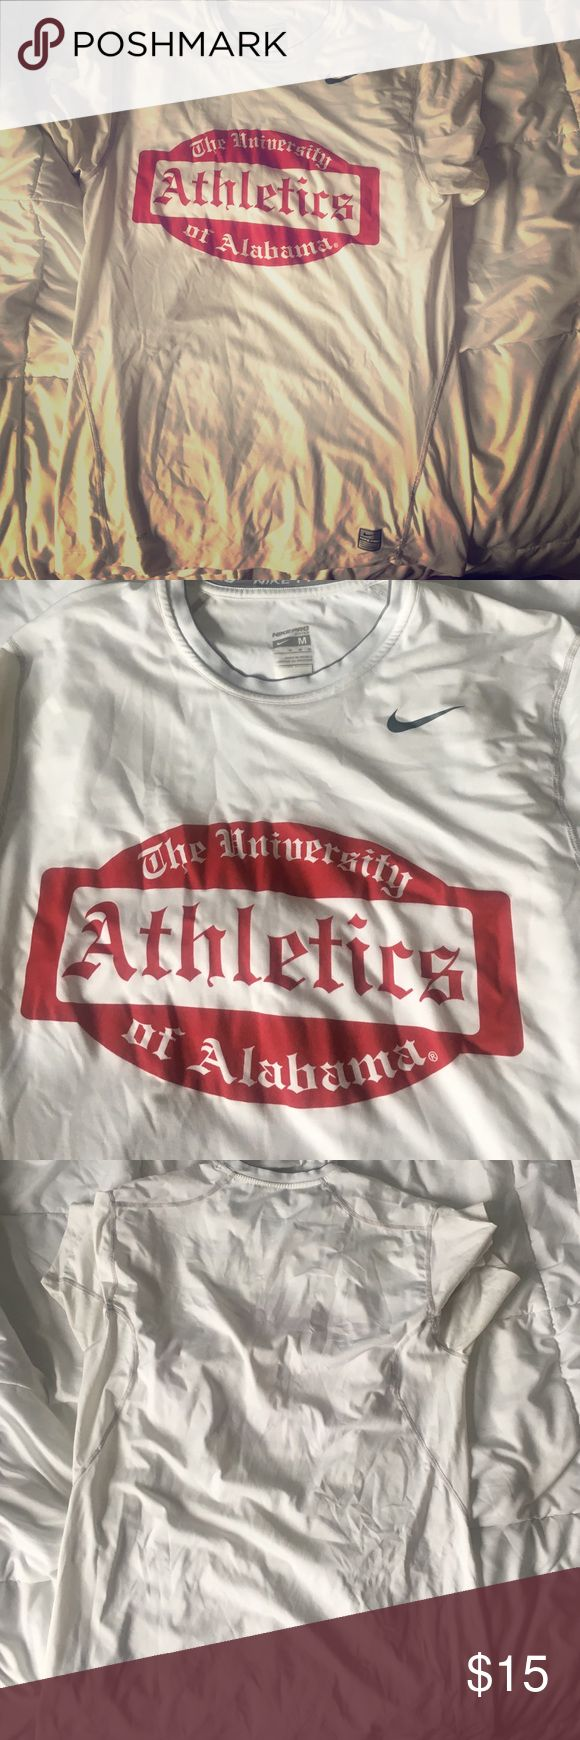 Nike Pro Men's University of Alabama Shirt Nike Pro Men's University of Alabama Shirt has never been worn and is great for workouts or game day! Fits great and is made out of Nike Pro Combat material that is breathable and stretchy. Nike Shirts Tees - Short Sleeve